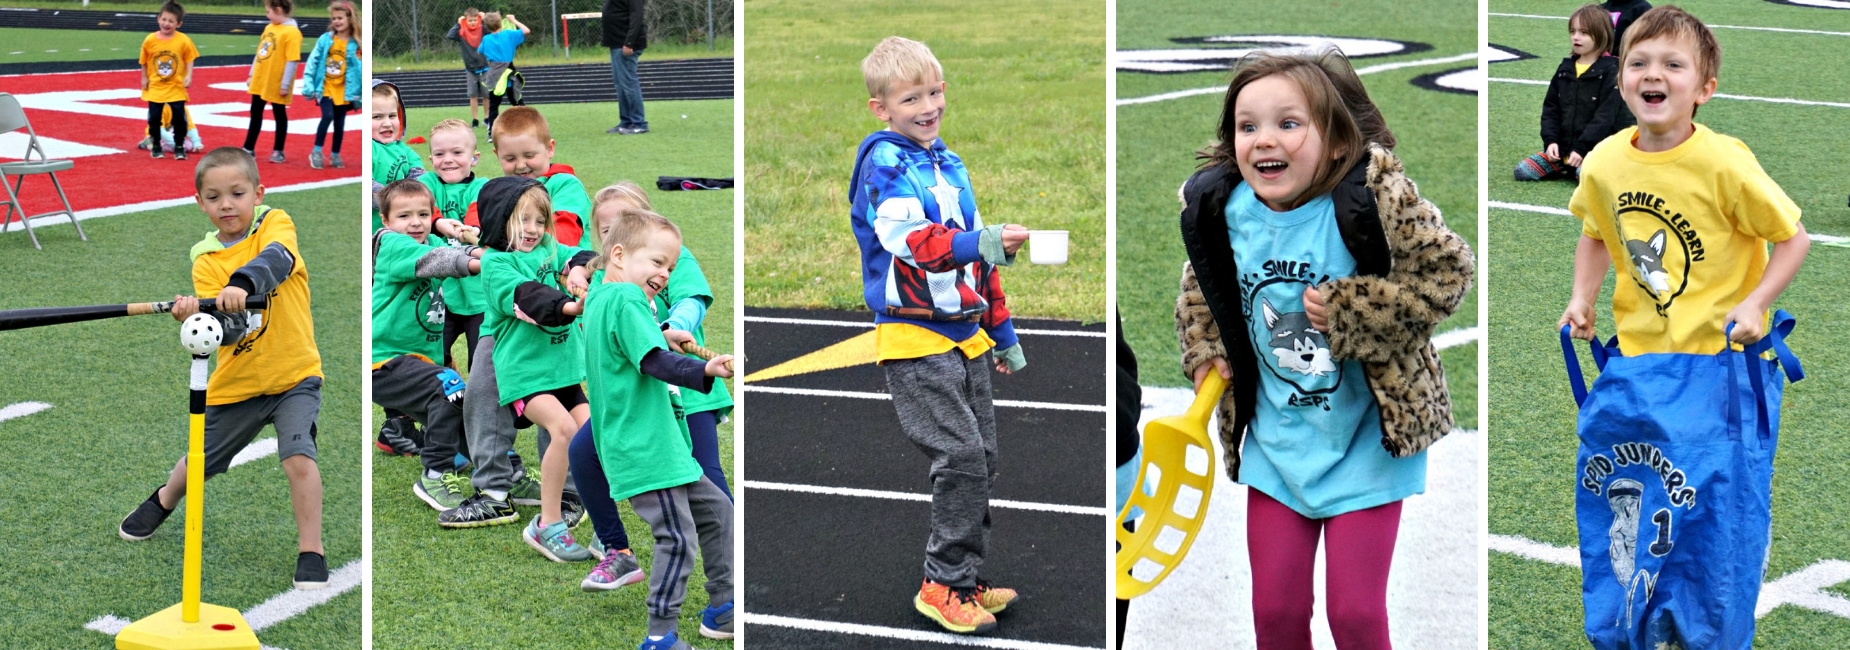 pictures of field day activities